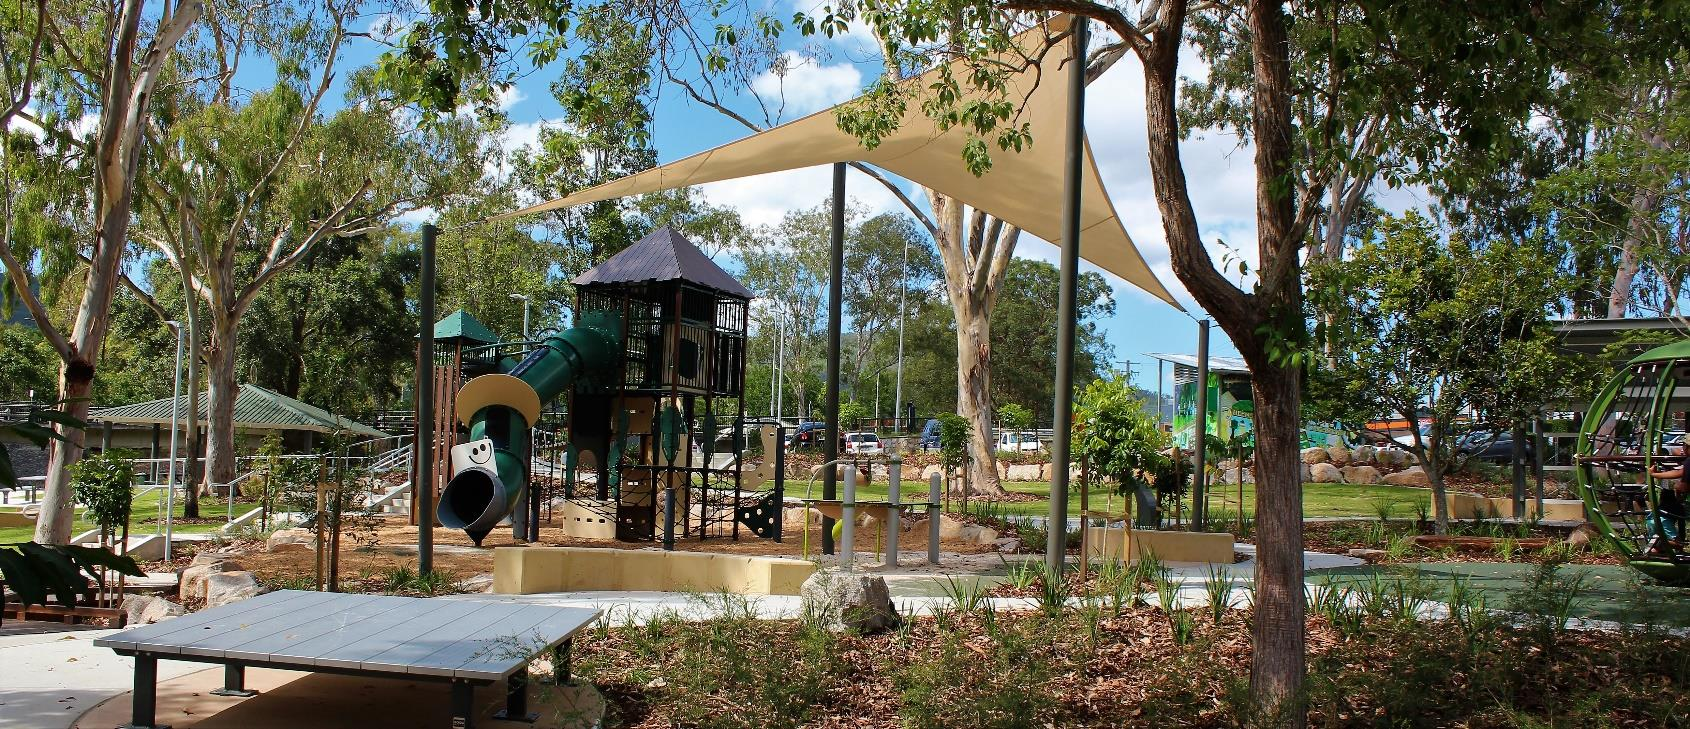 Walton Bridge Park playground